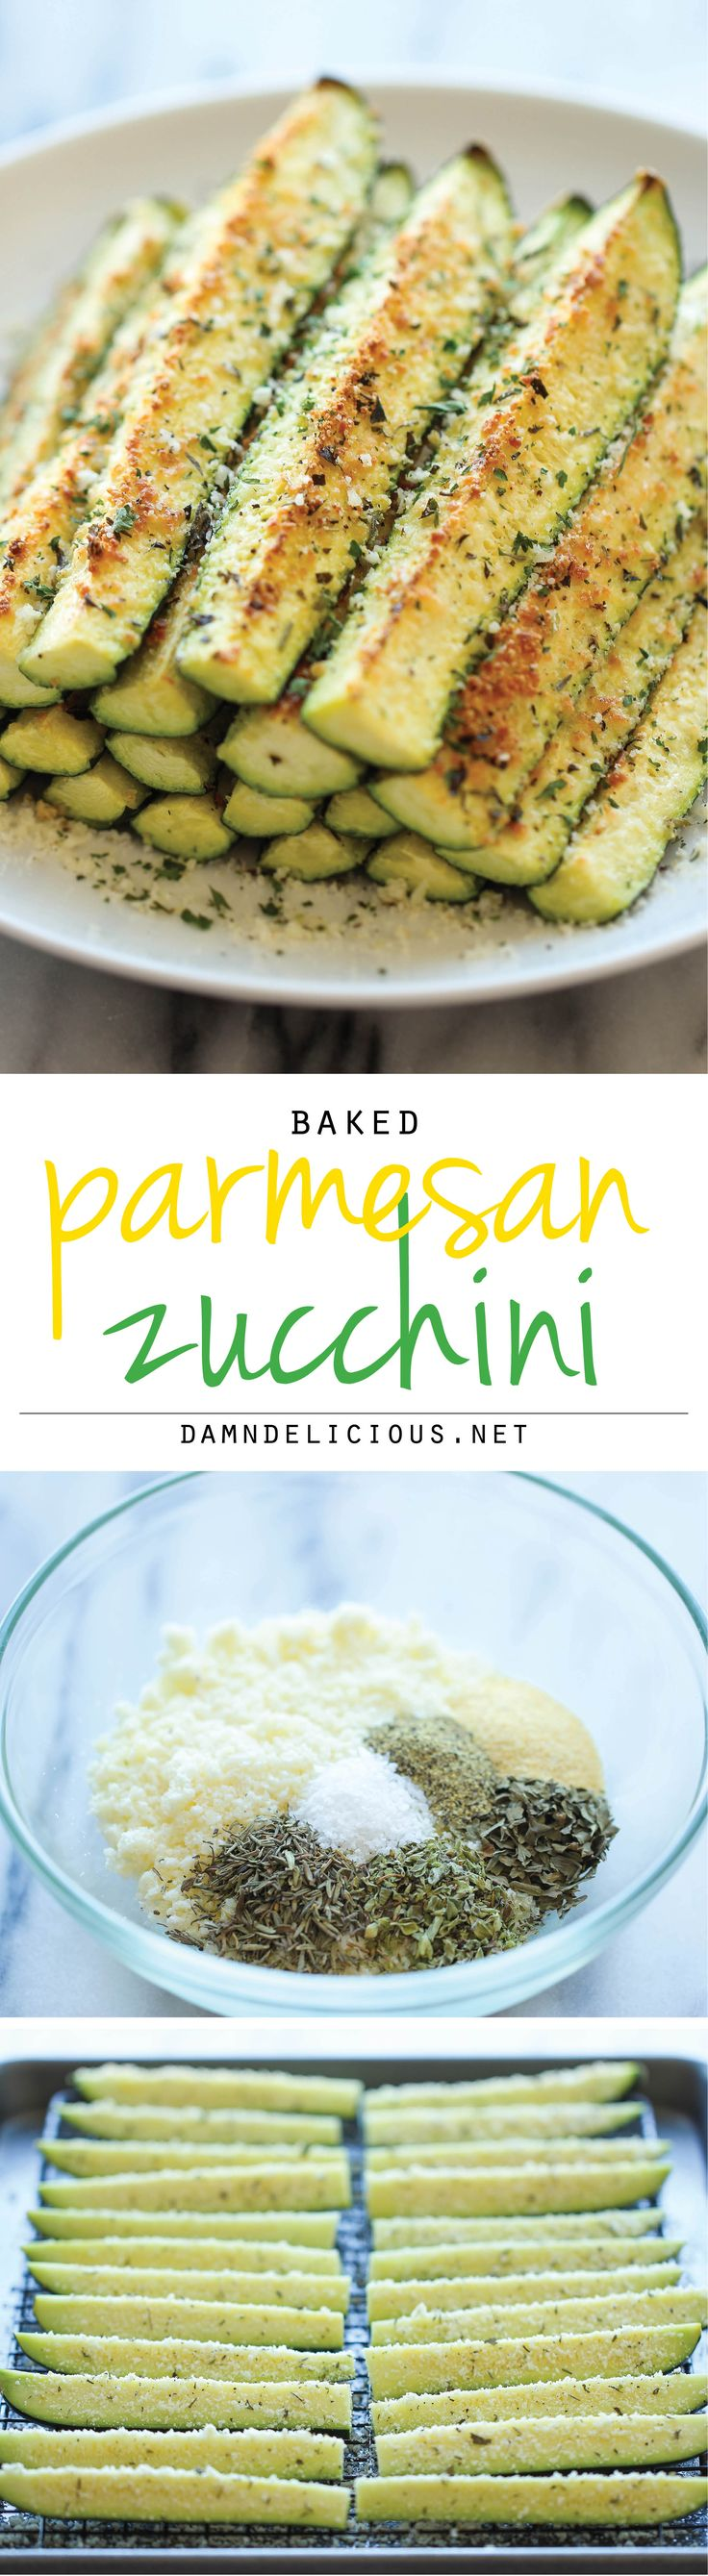 Baked Parmesan Zucchini - Crisp, tender zucchini sticks oven-roasted to perfection. Its healthy, nutritious and completely addictive!